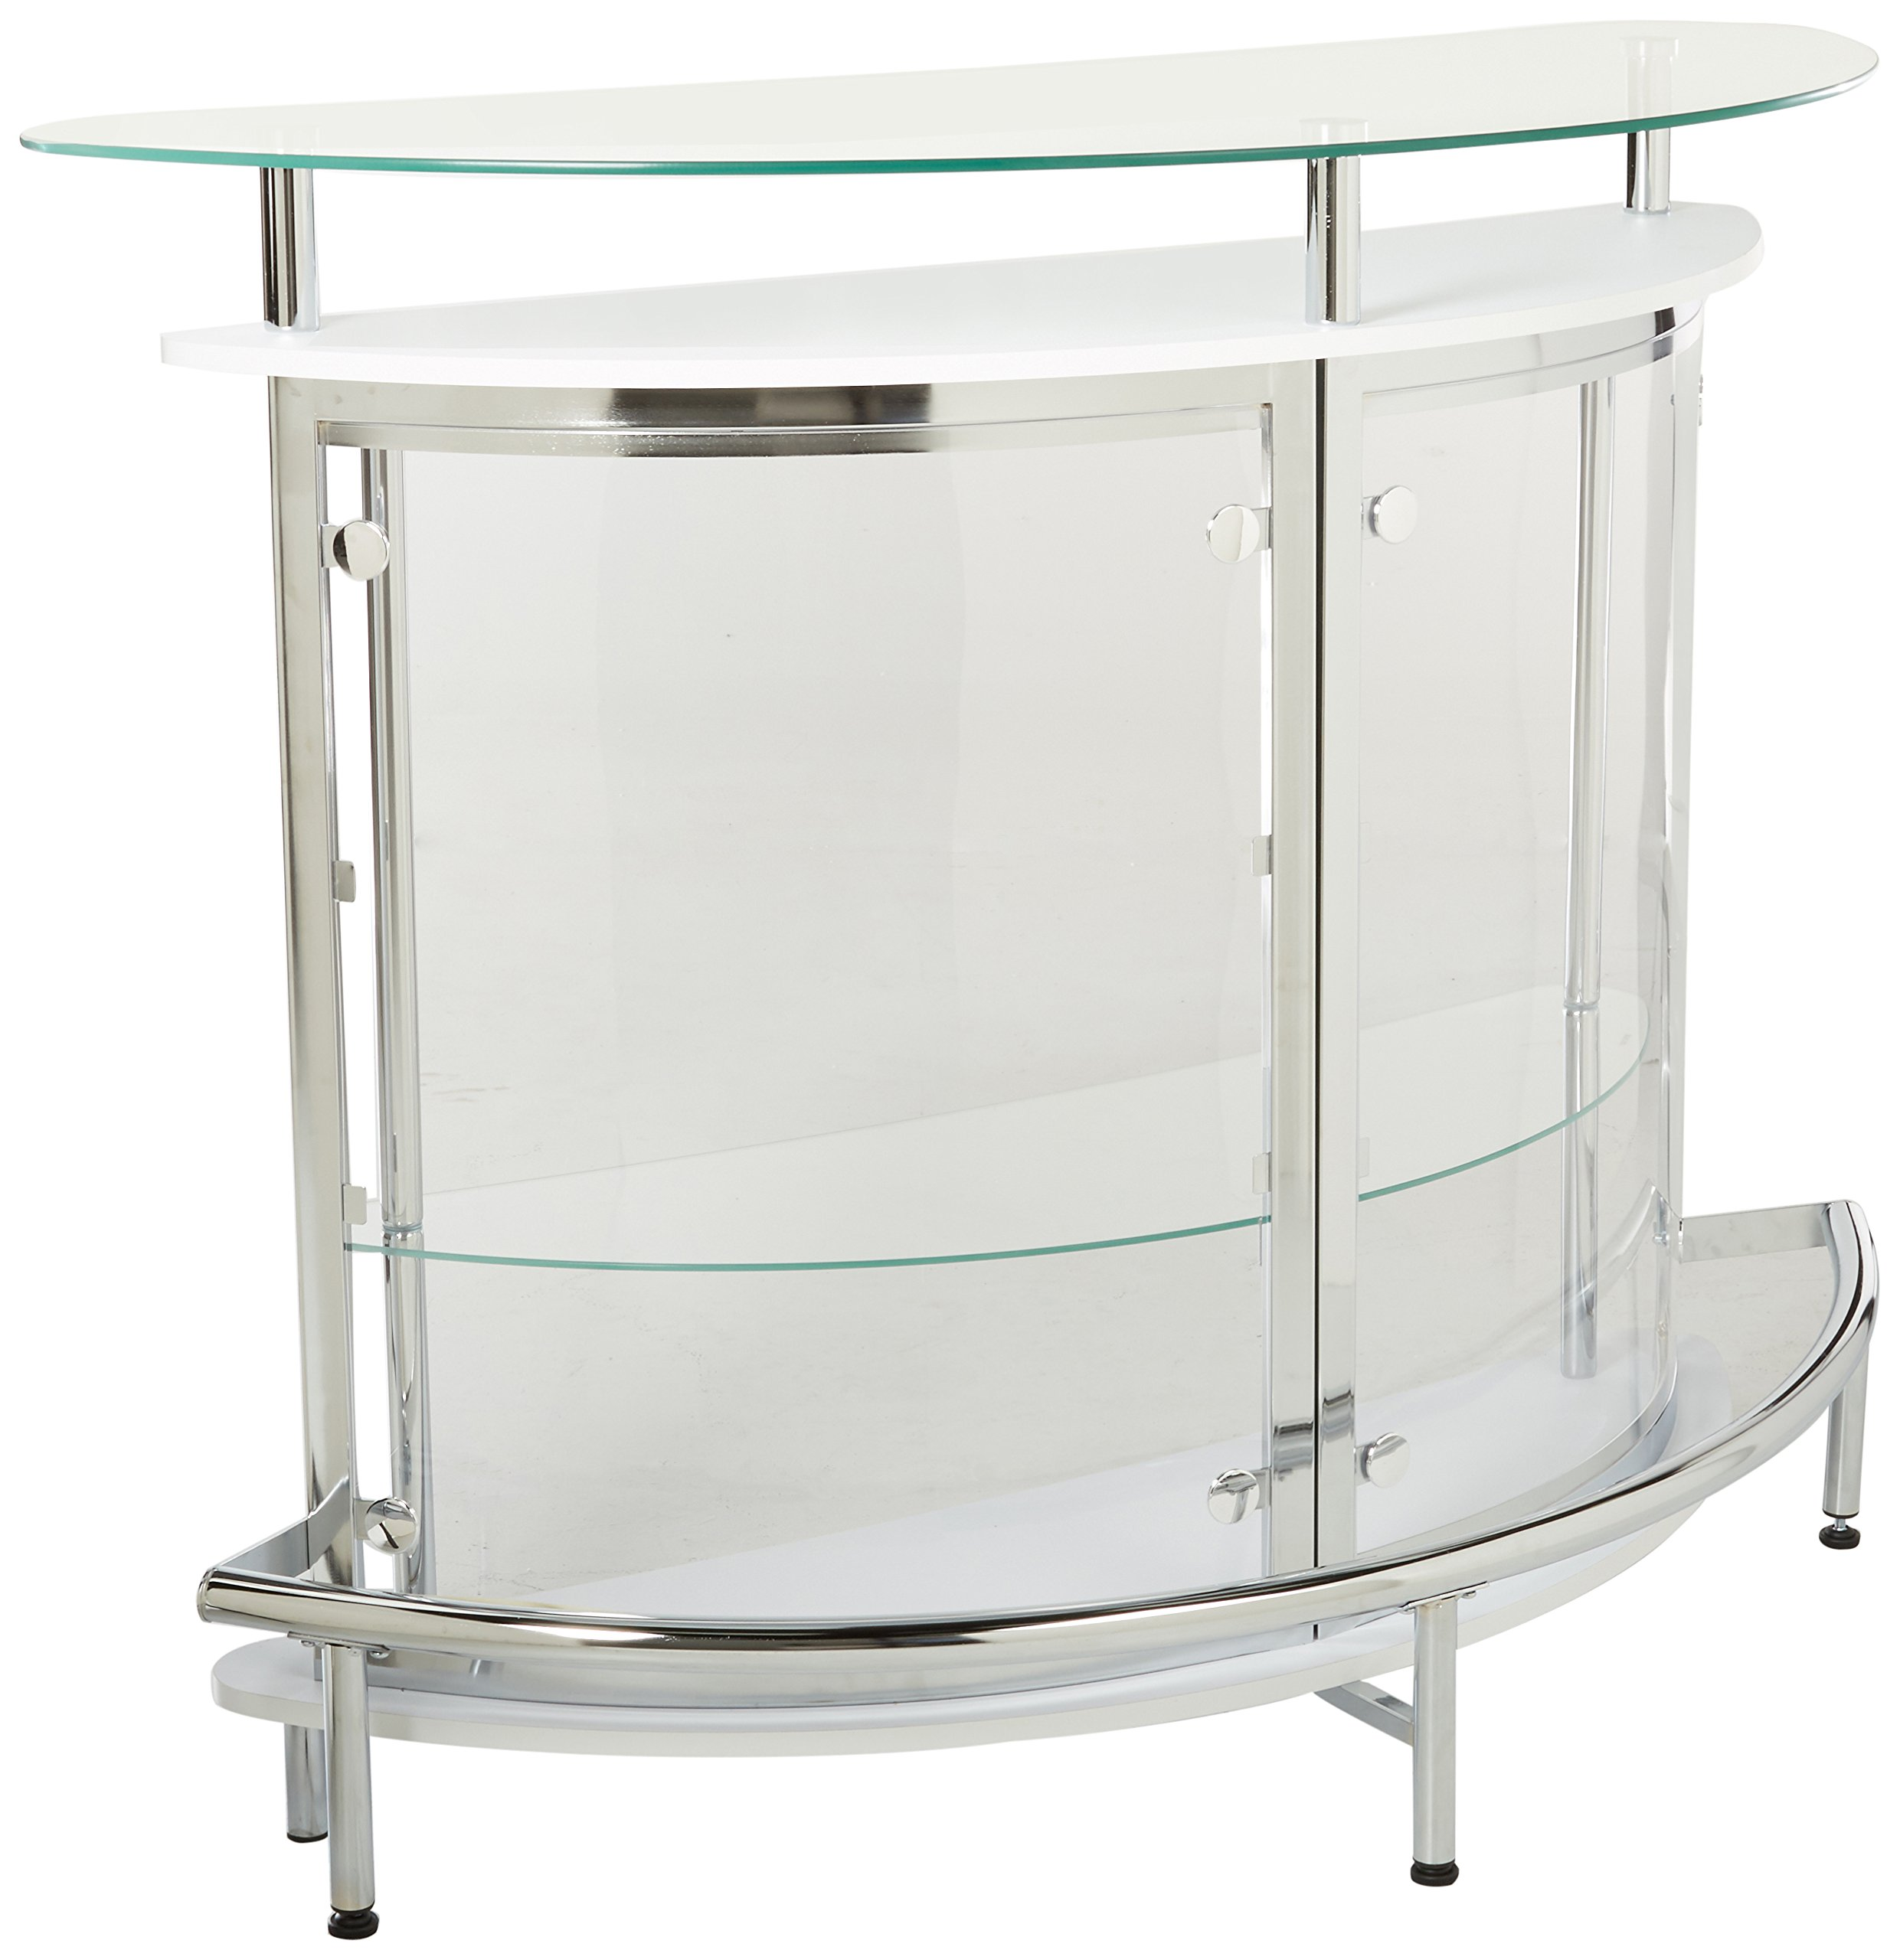 Bar Unit with Acrylic Front White, Chrome and Clear by Coaster Home Furnishings